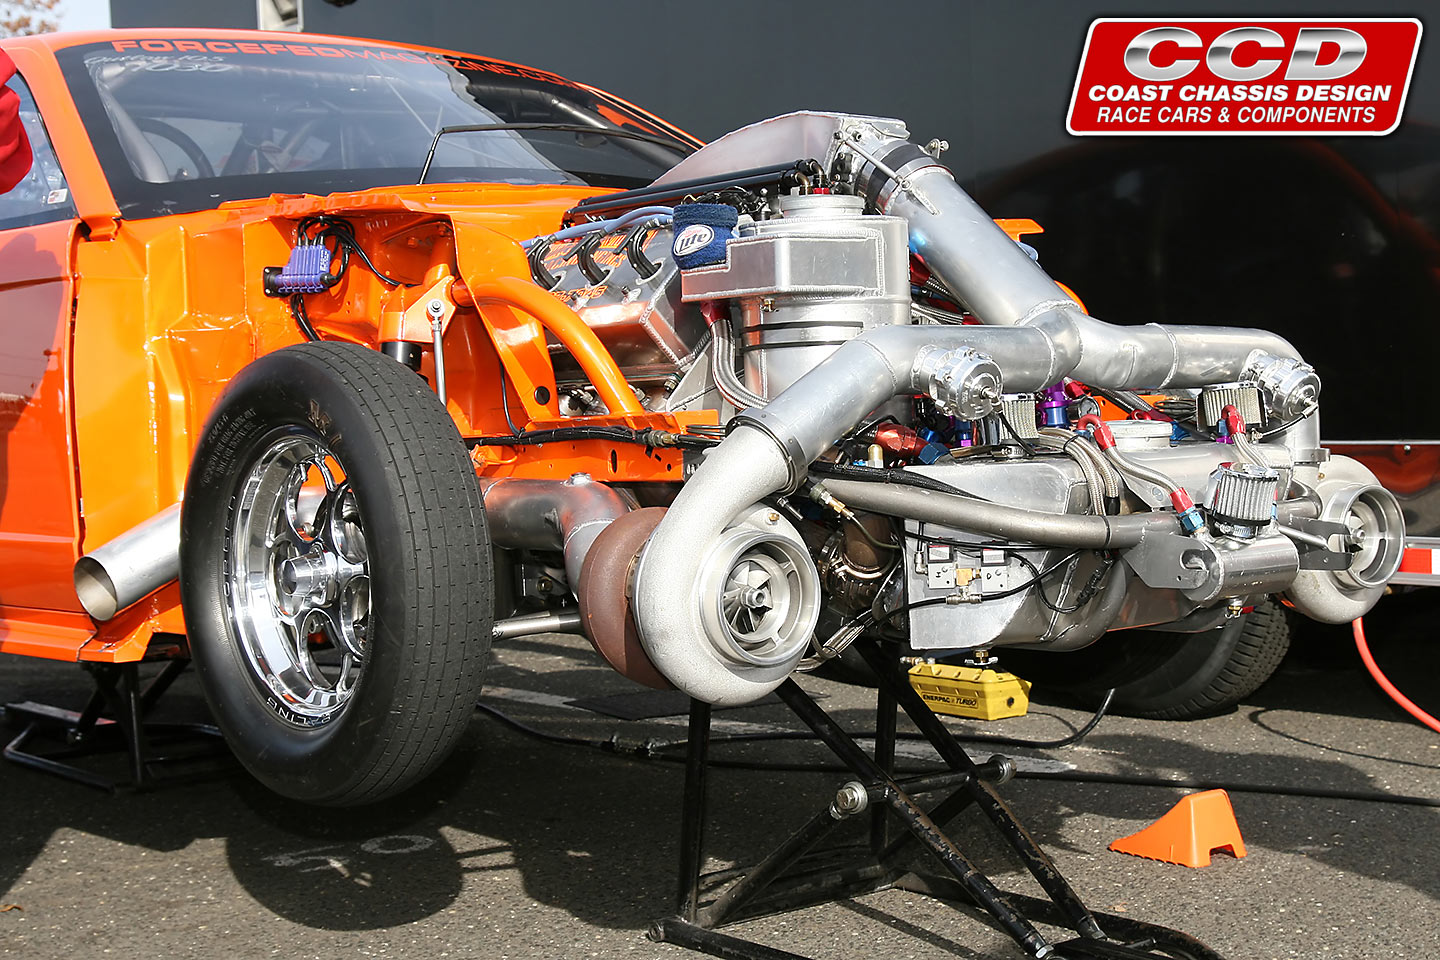 Coast chassis design customers free drag racing wallapers for Wallpaper drag race motor